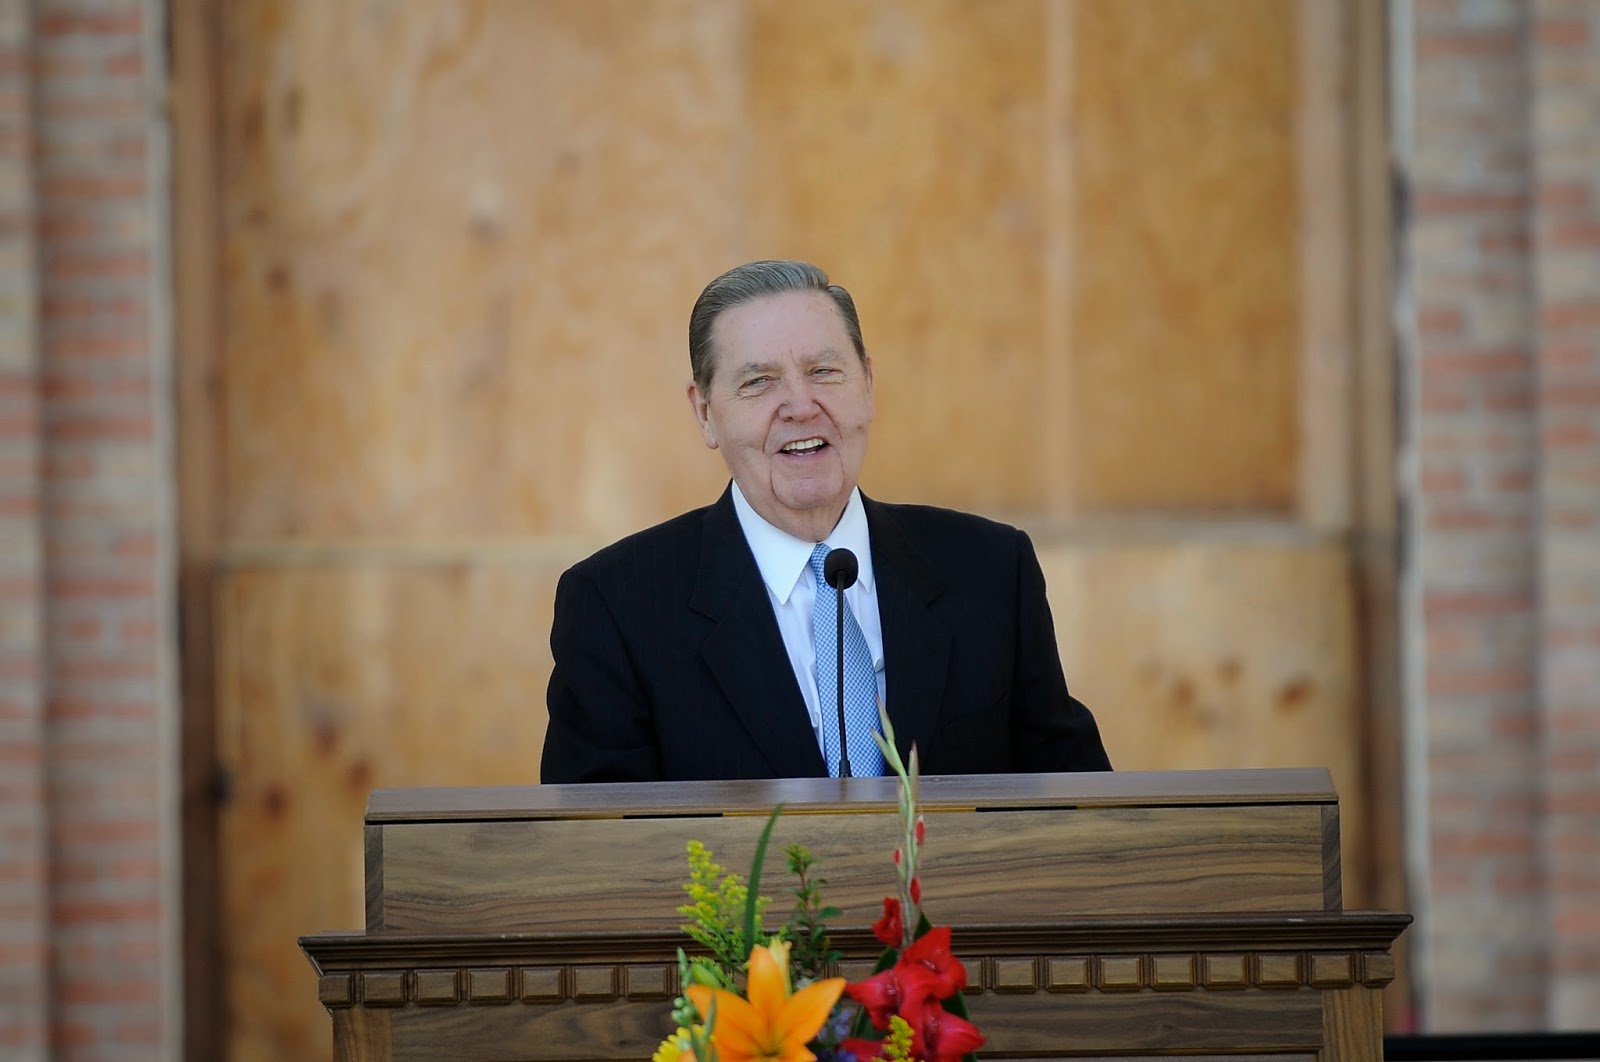 Elder hollands 10 best talks of all time aggieland mormons the ministry of angels 2008 listen here biocorpaavc